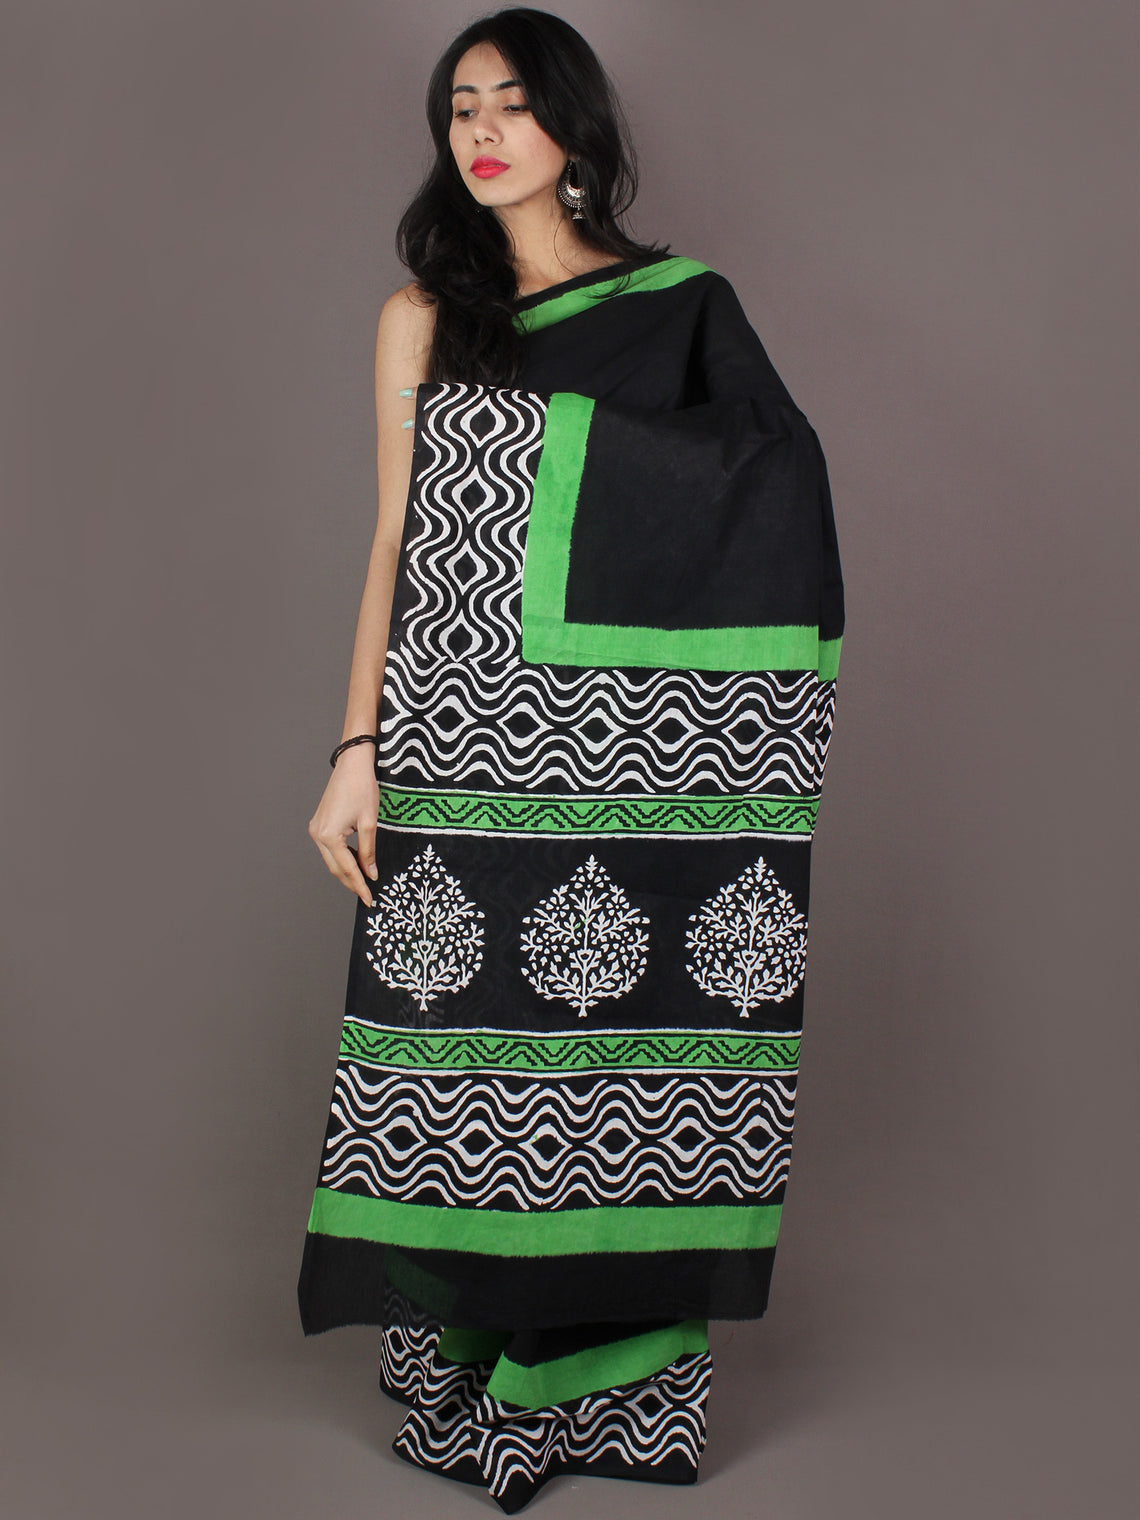 Black White Mint Green Hand Block Printed in Cotton Mul Saree - S03170988